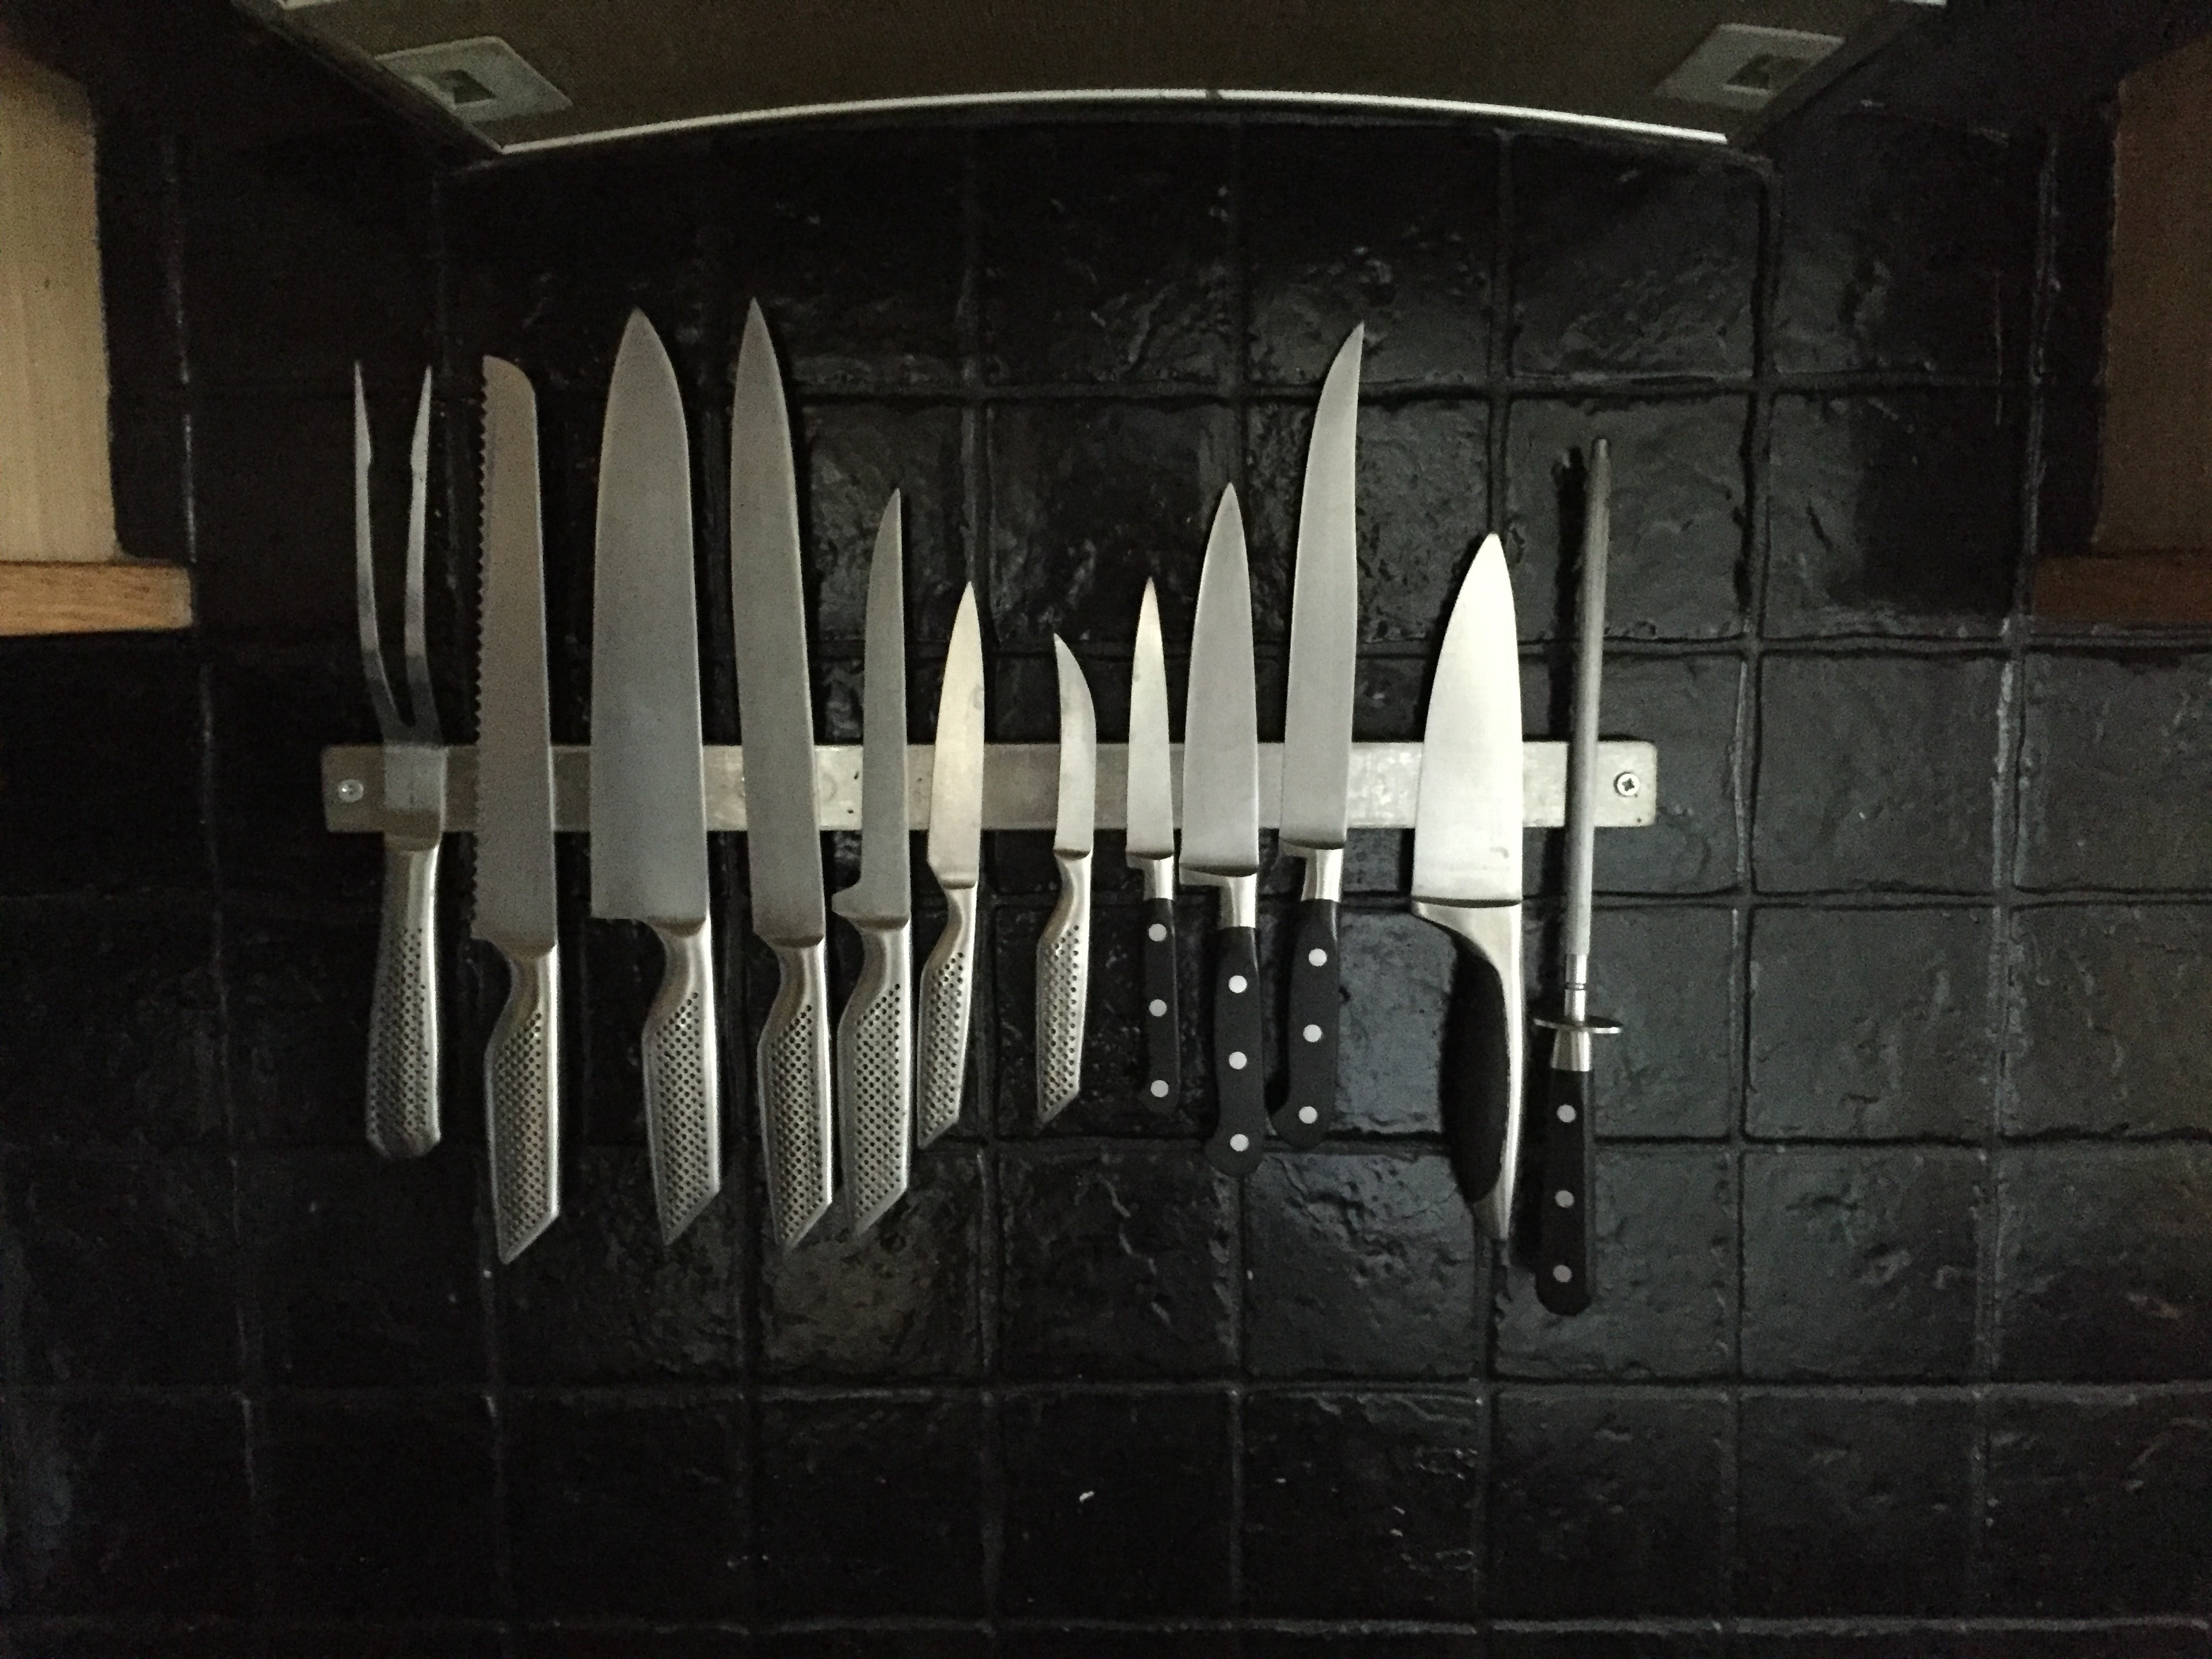 Magnetic knife strip